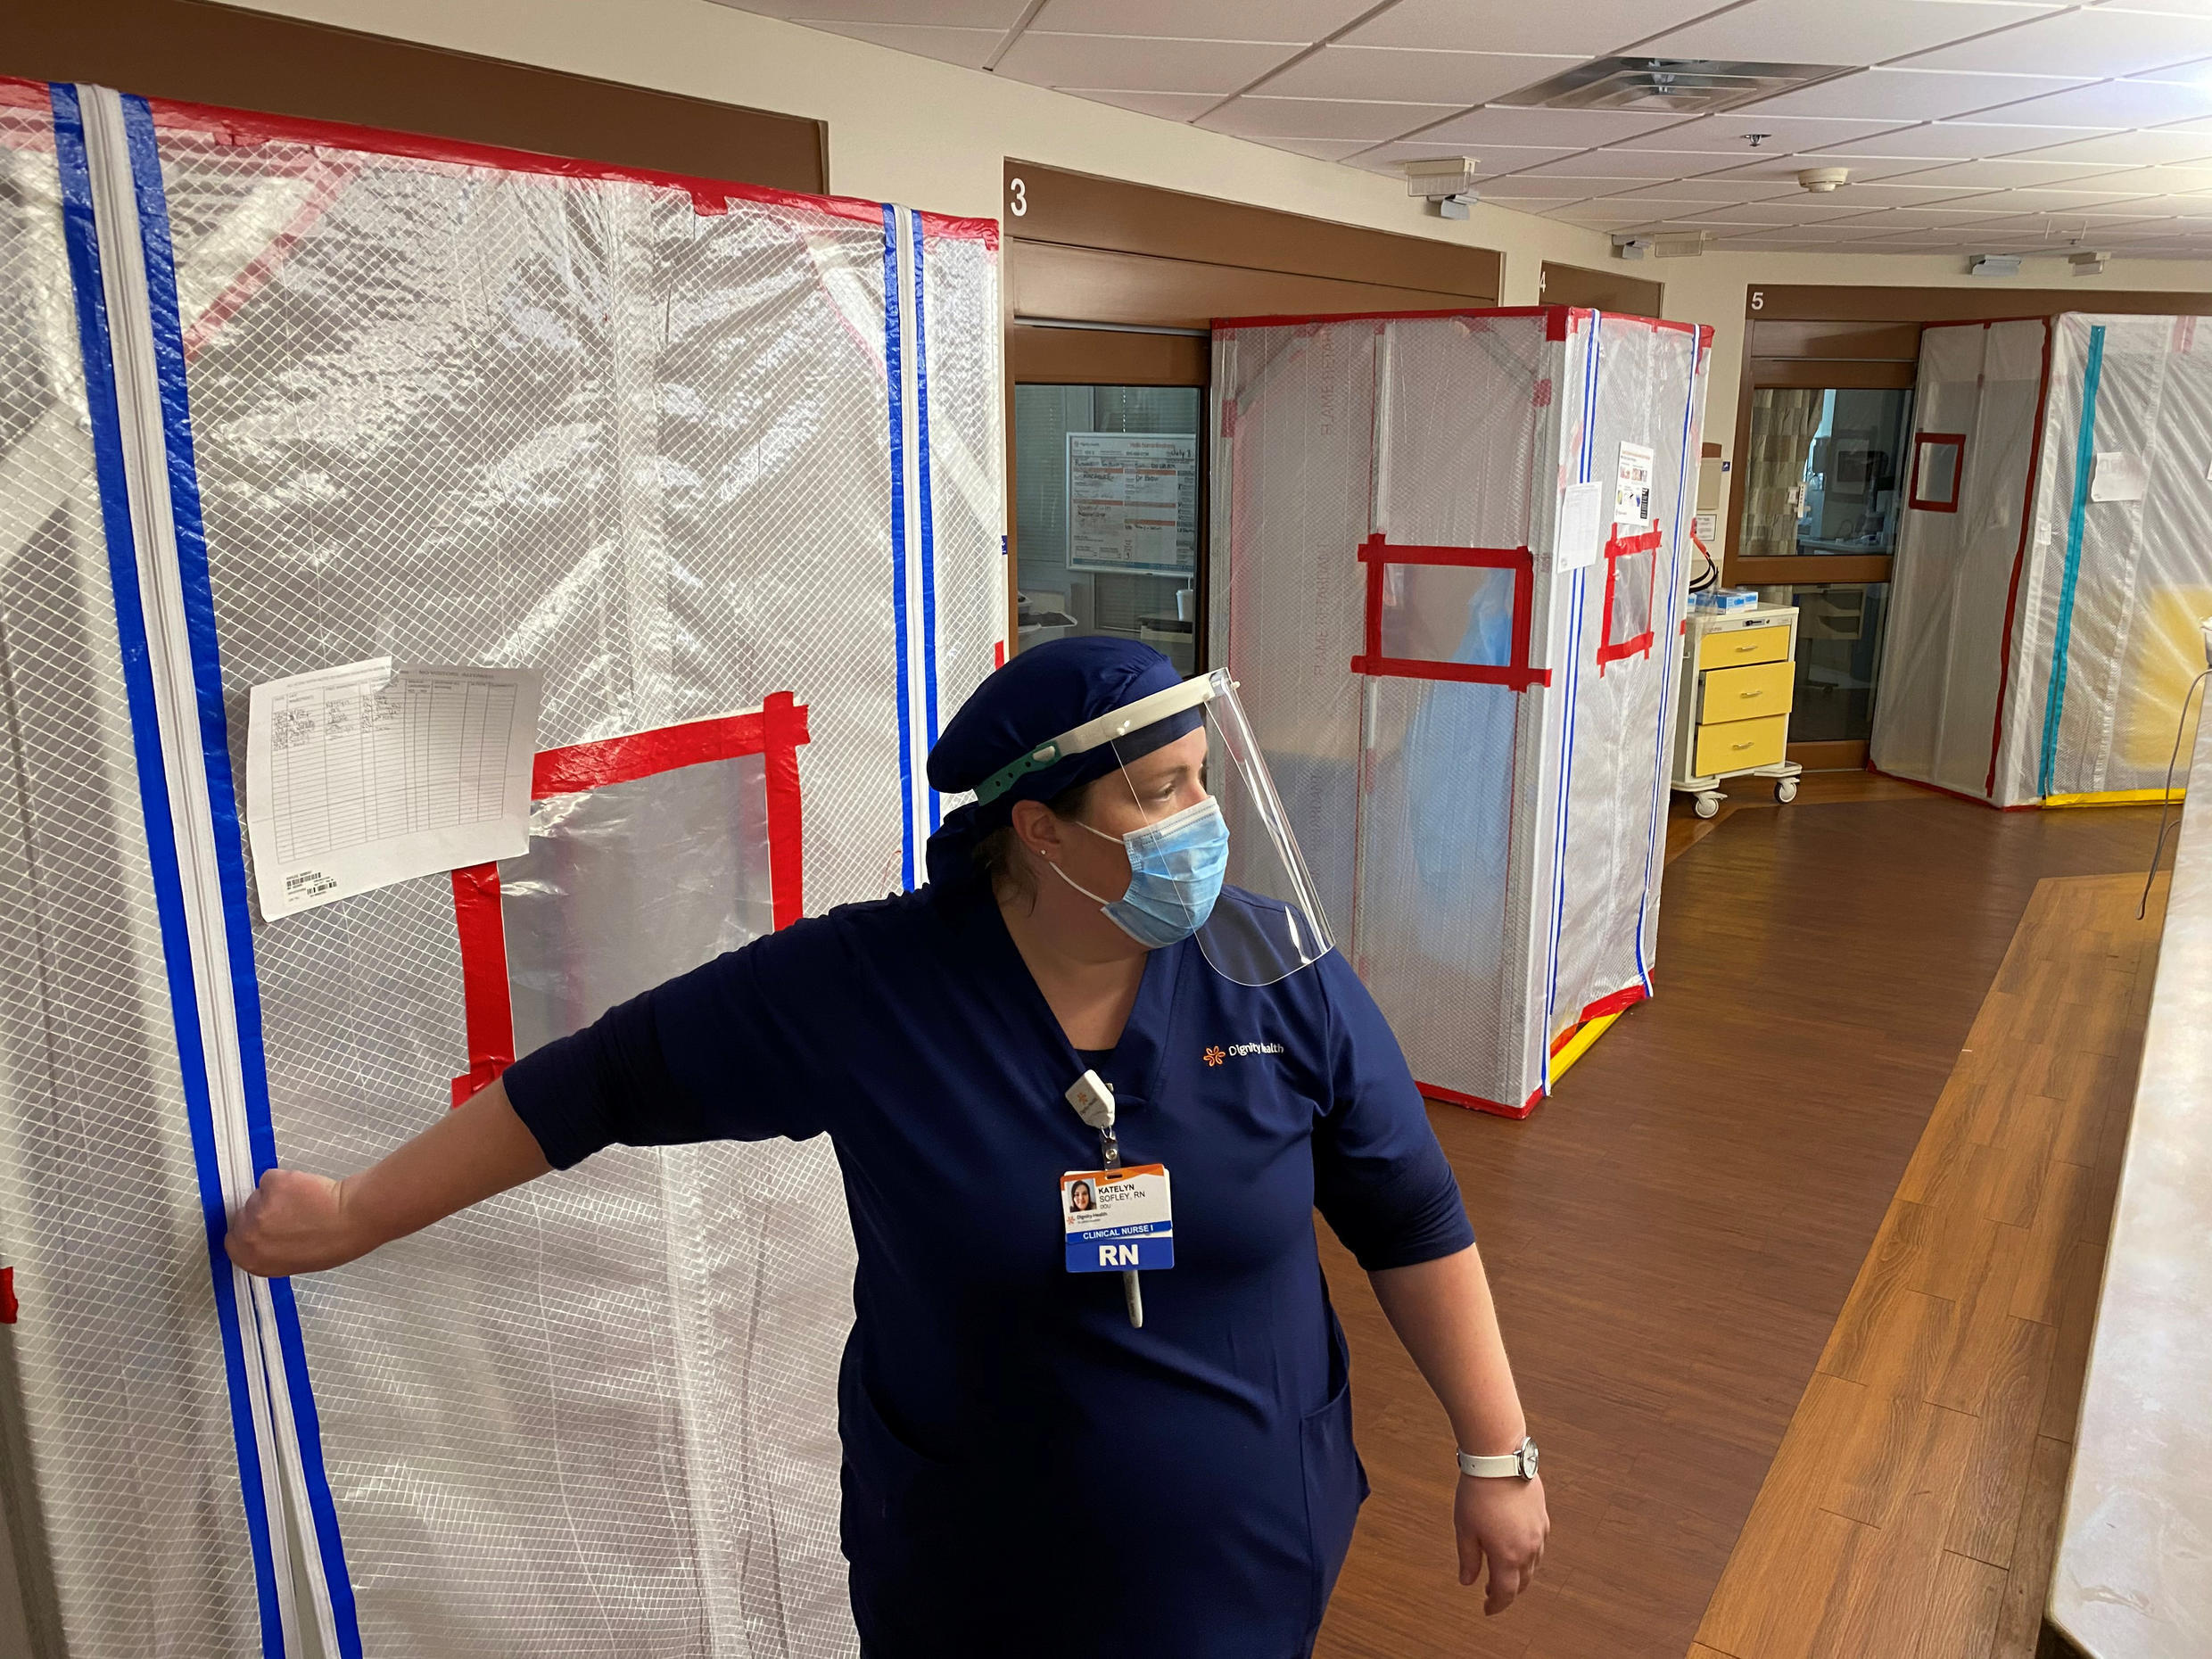 Nurse Katelyn Sofley stands at the entrance to a negative pressure ICU hospital room, where Covid-19 patients are treated, at St John's Regional Medical Center in Oxnard, California, U.S., July 9, 2020.